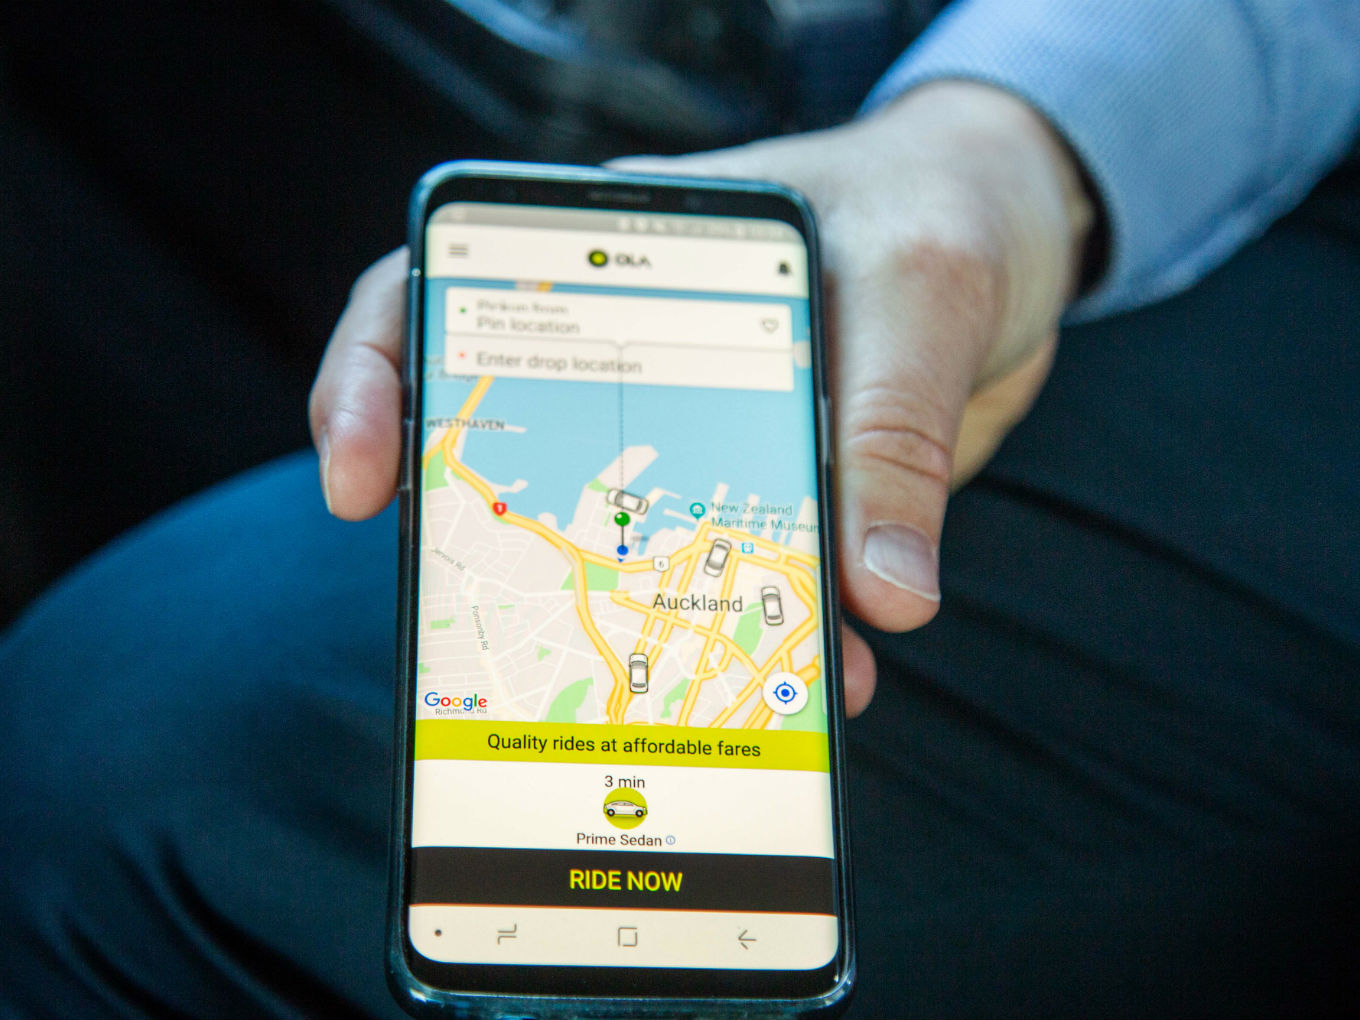 Ola's New Postpaid Service Will Allow Users To Pay Later For Their Ola Rides